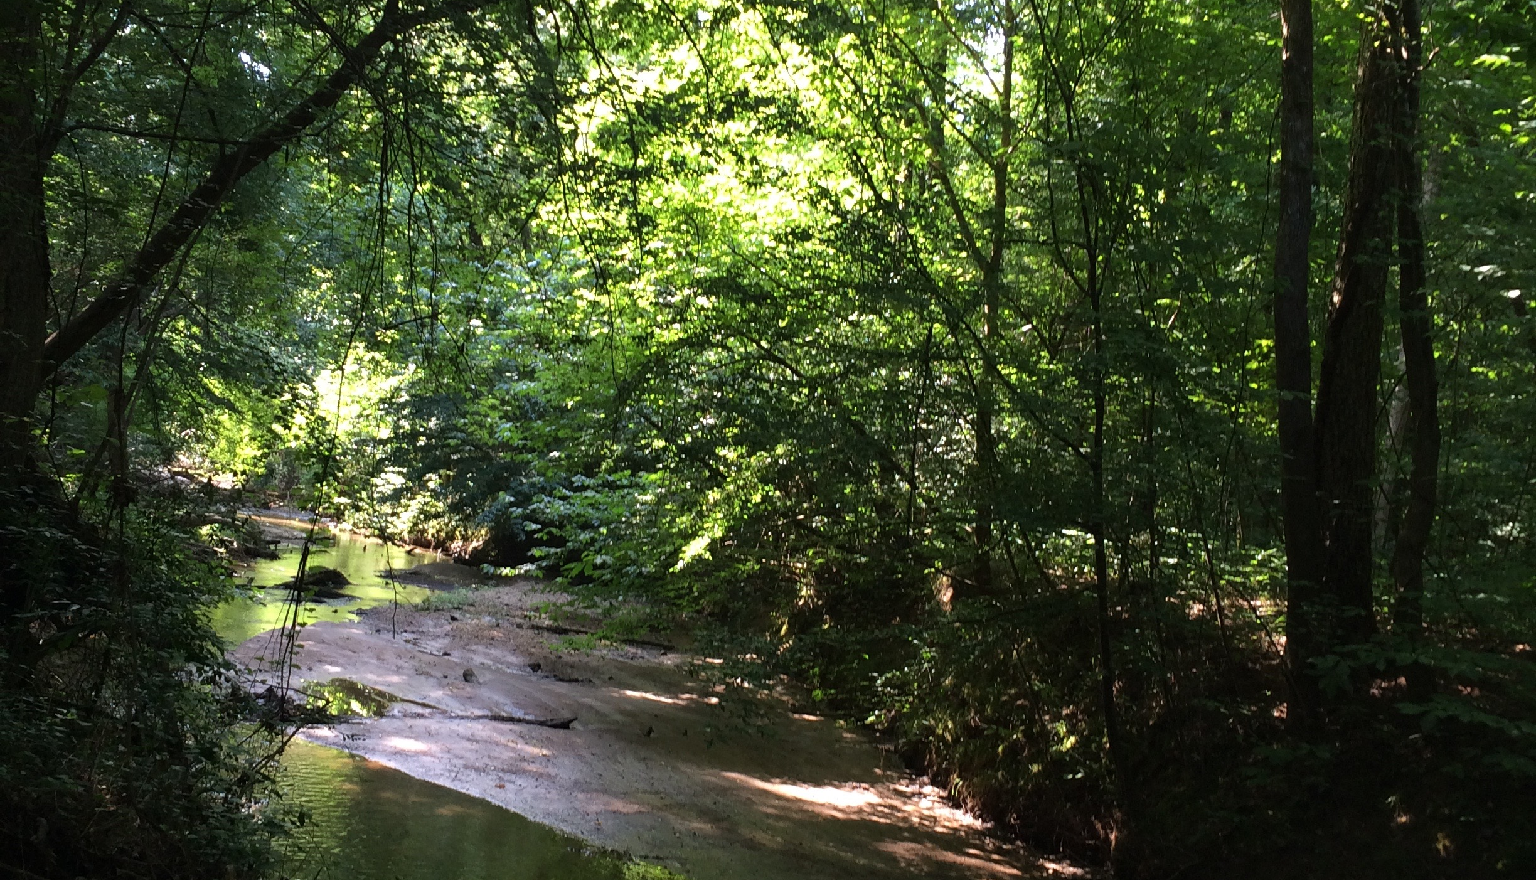 This 148 acre property consists of pasture, as well as natural pine, oak-hickory-pine and bottomland hardwood forests with canebrakes along Sugar Creek.